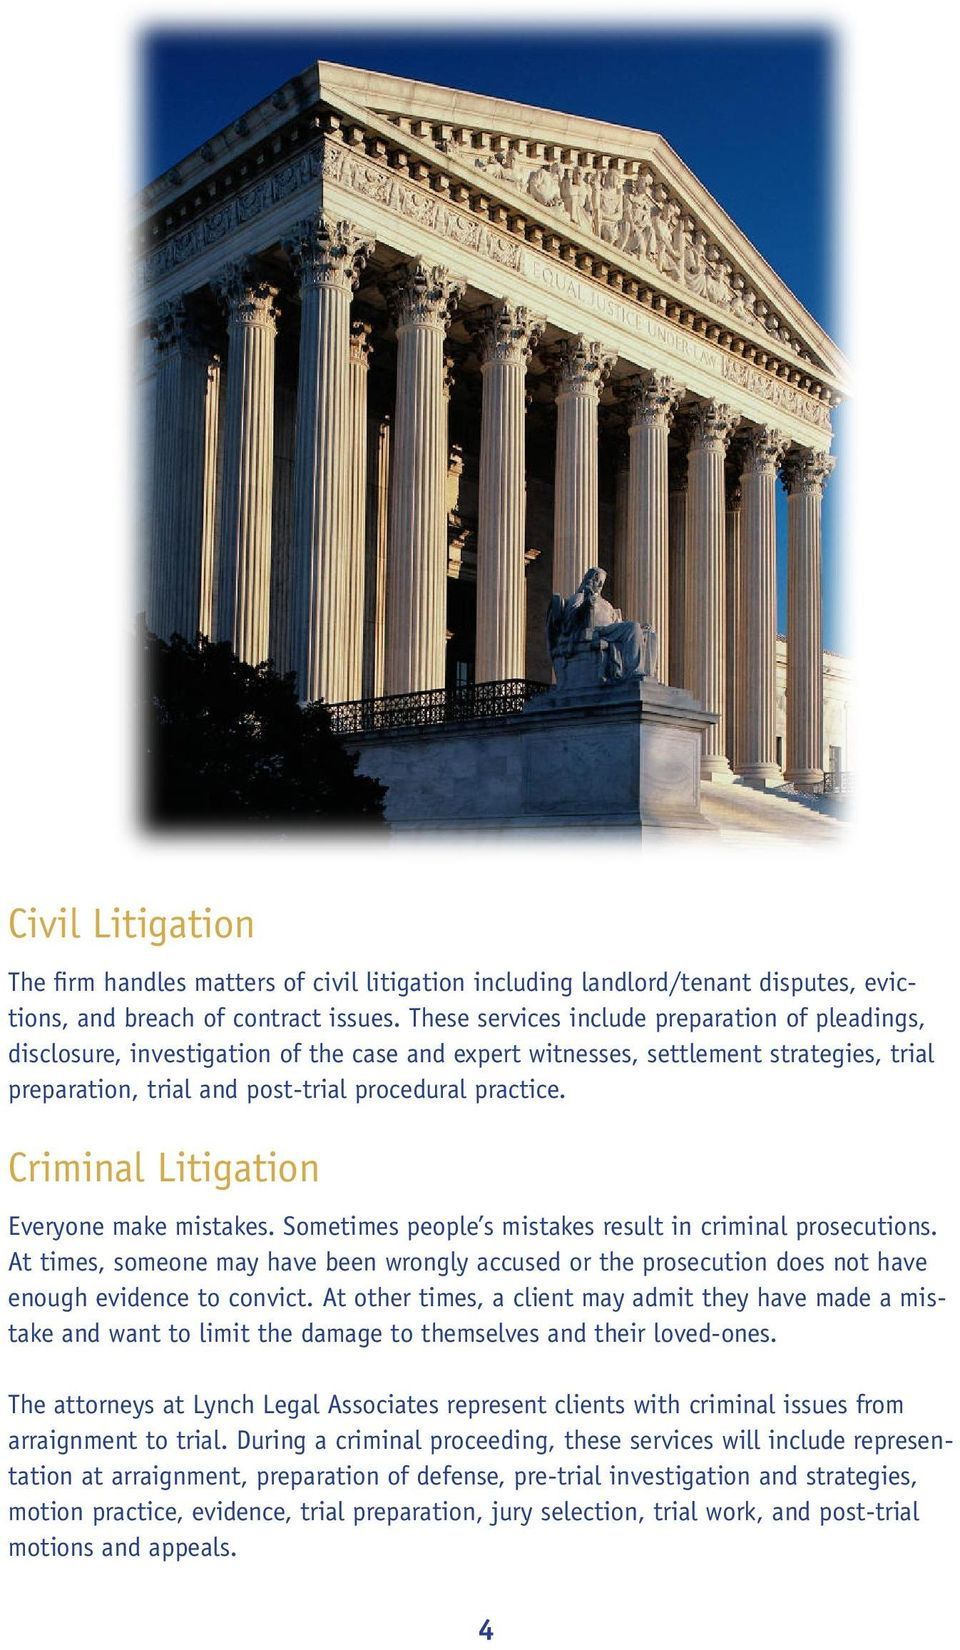 Criminal Litigation Everyone make mistakes. Sometimes people s mistakes result in criminal prosecutions.